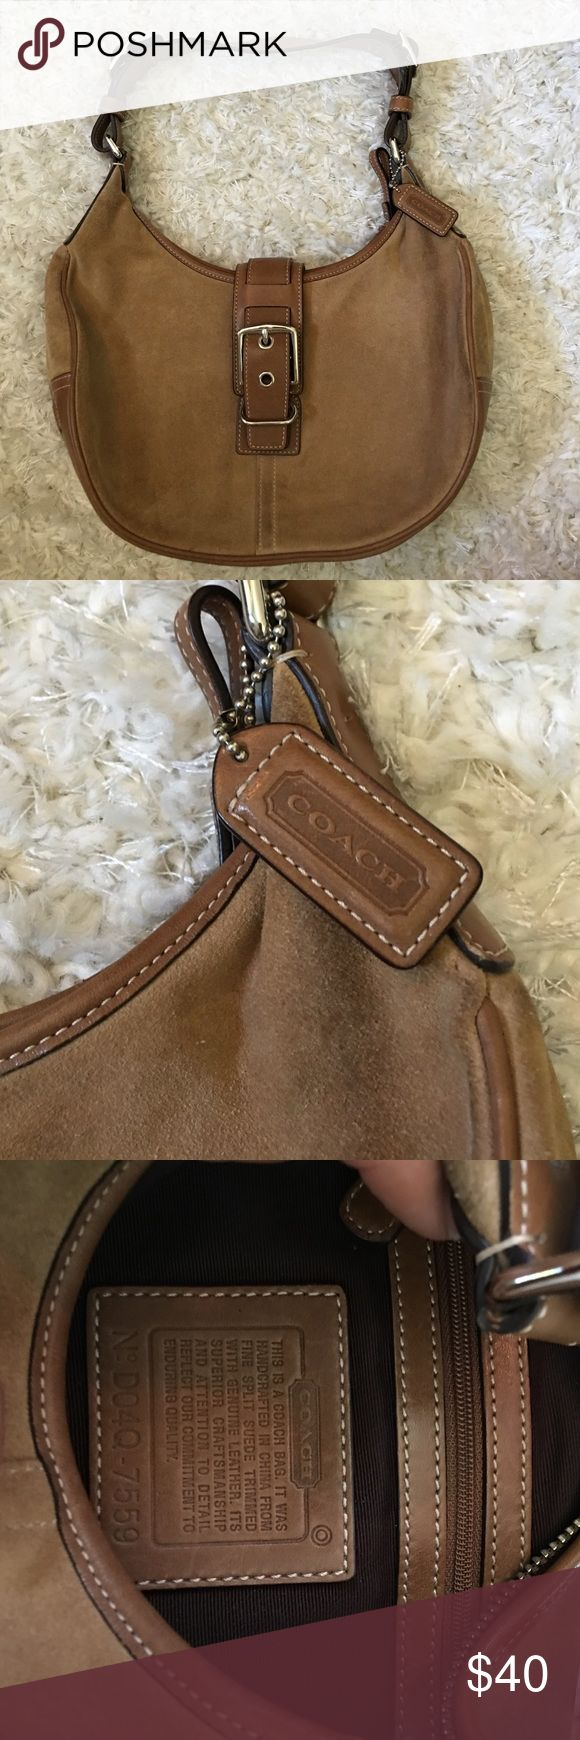 Coach hobo bag Coach tan & brown suede hobo bag. Great condition, no rips, tears or smell. Coach Bags Hobos